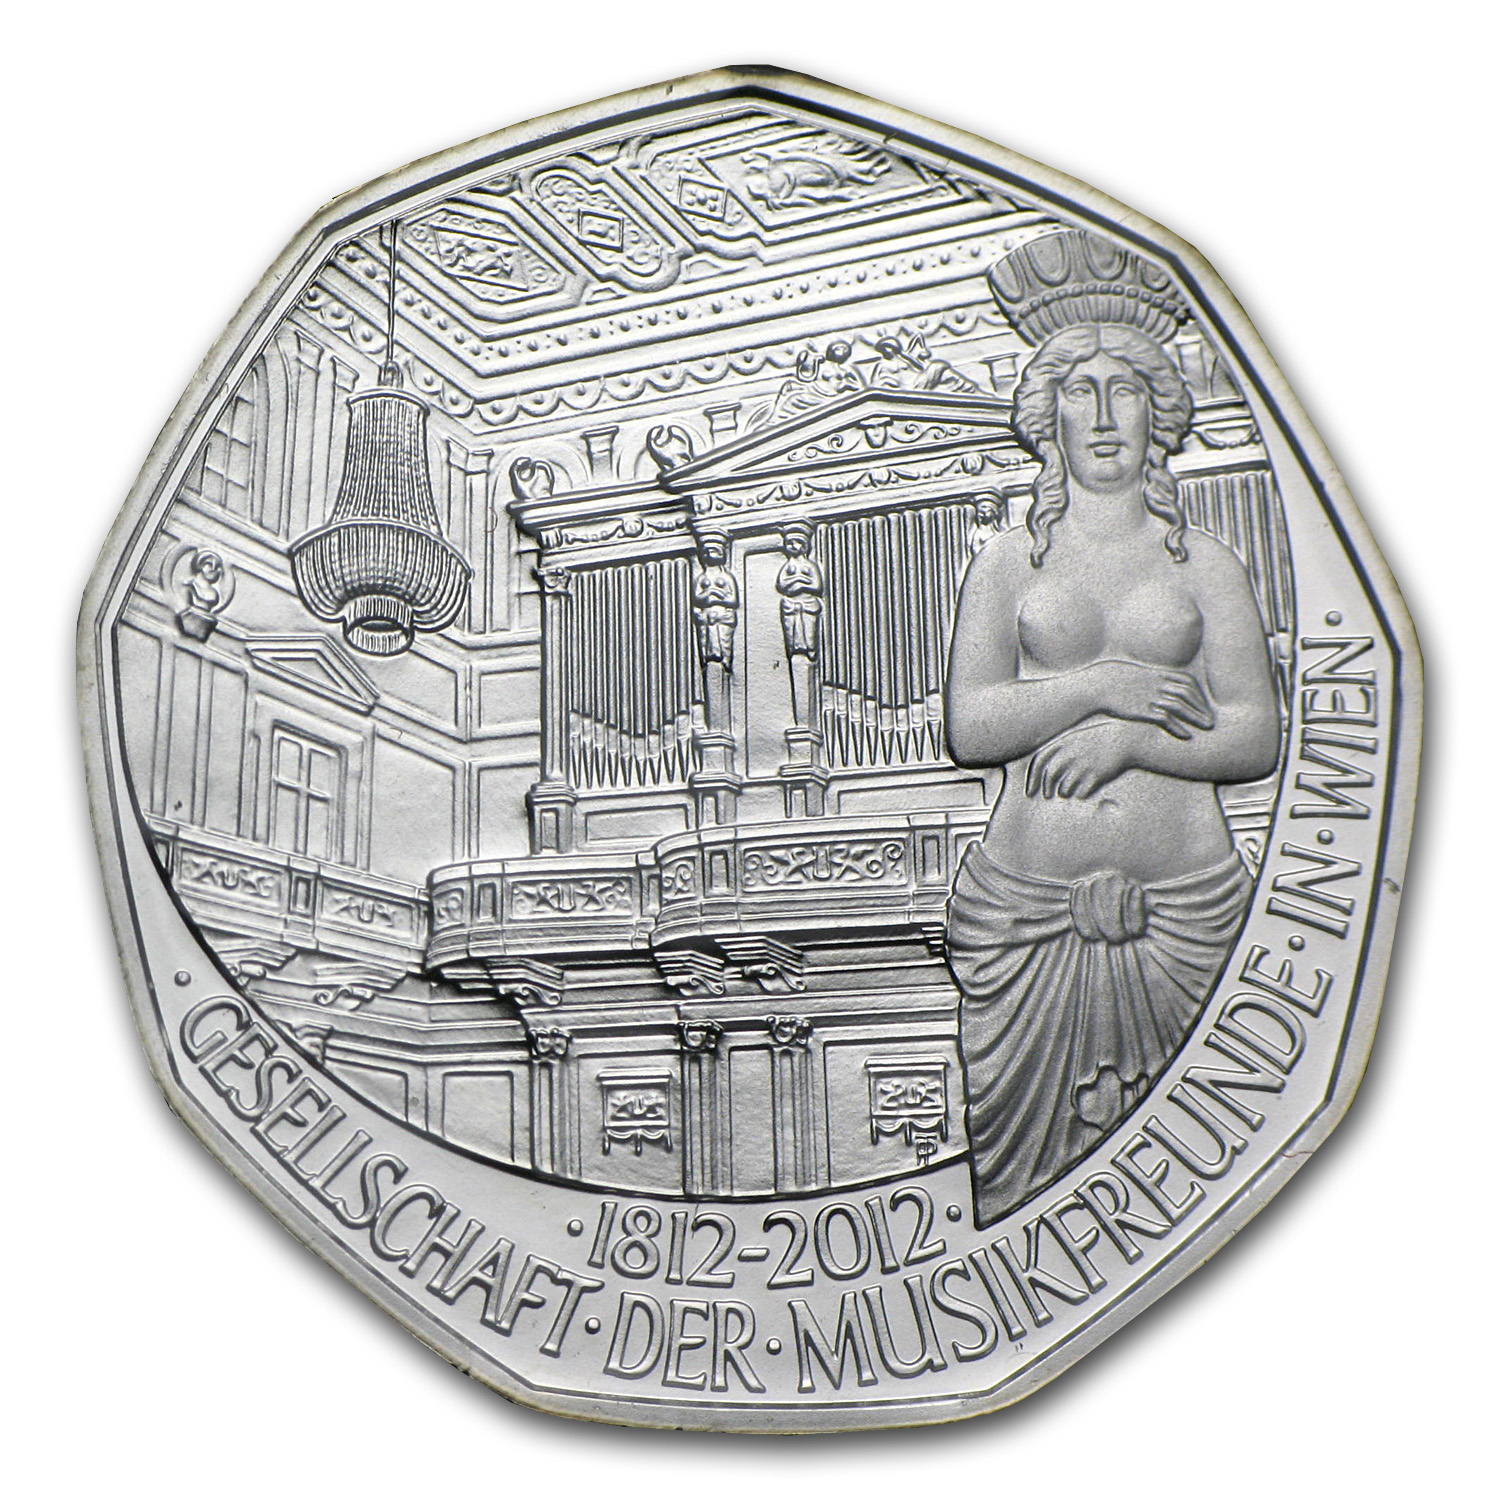 2011 The Bicentenary of Society of Music Lovers 5 Euro Silver